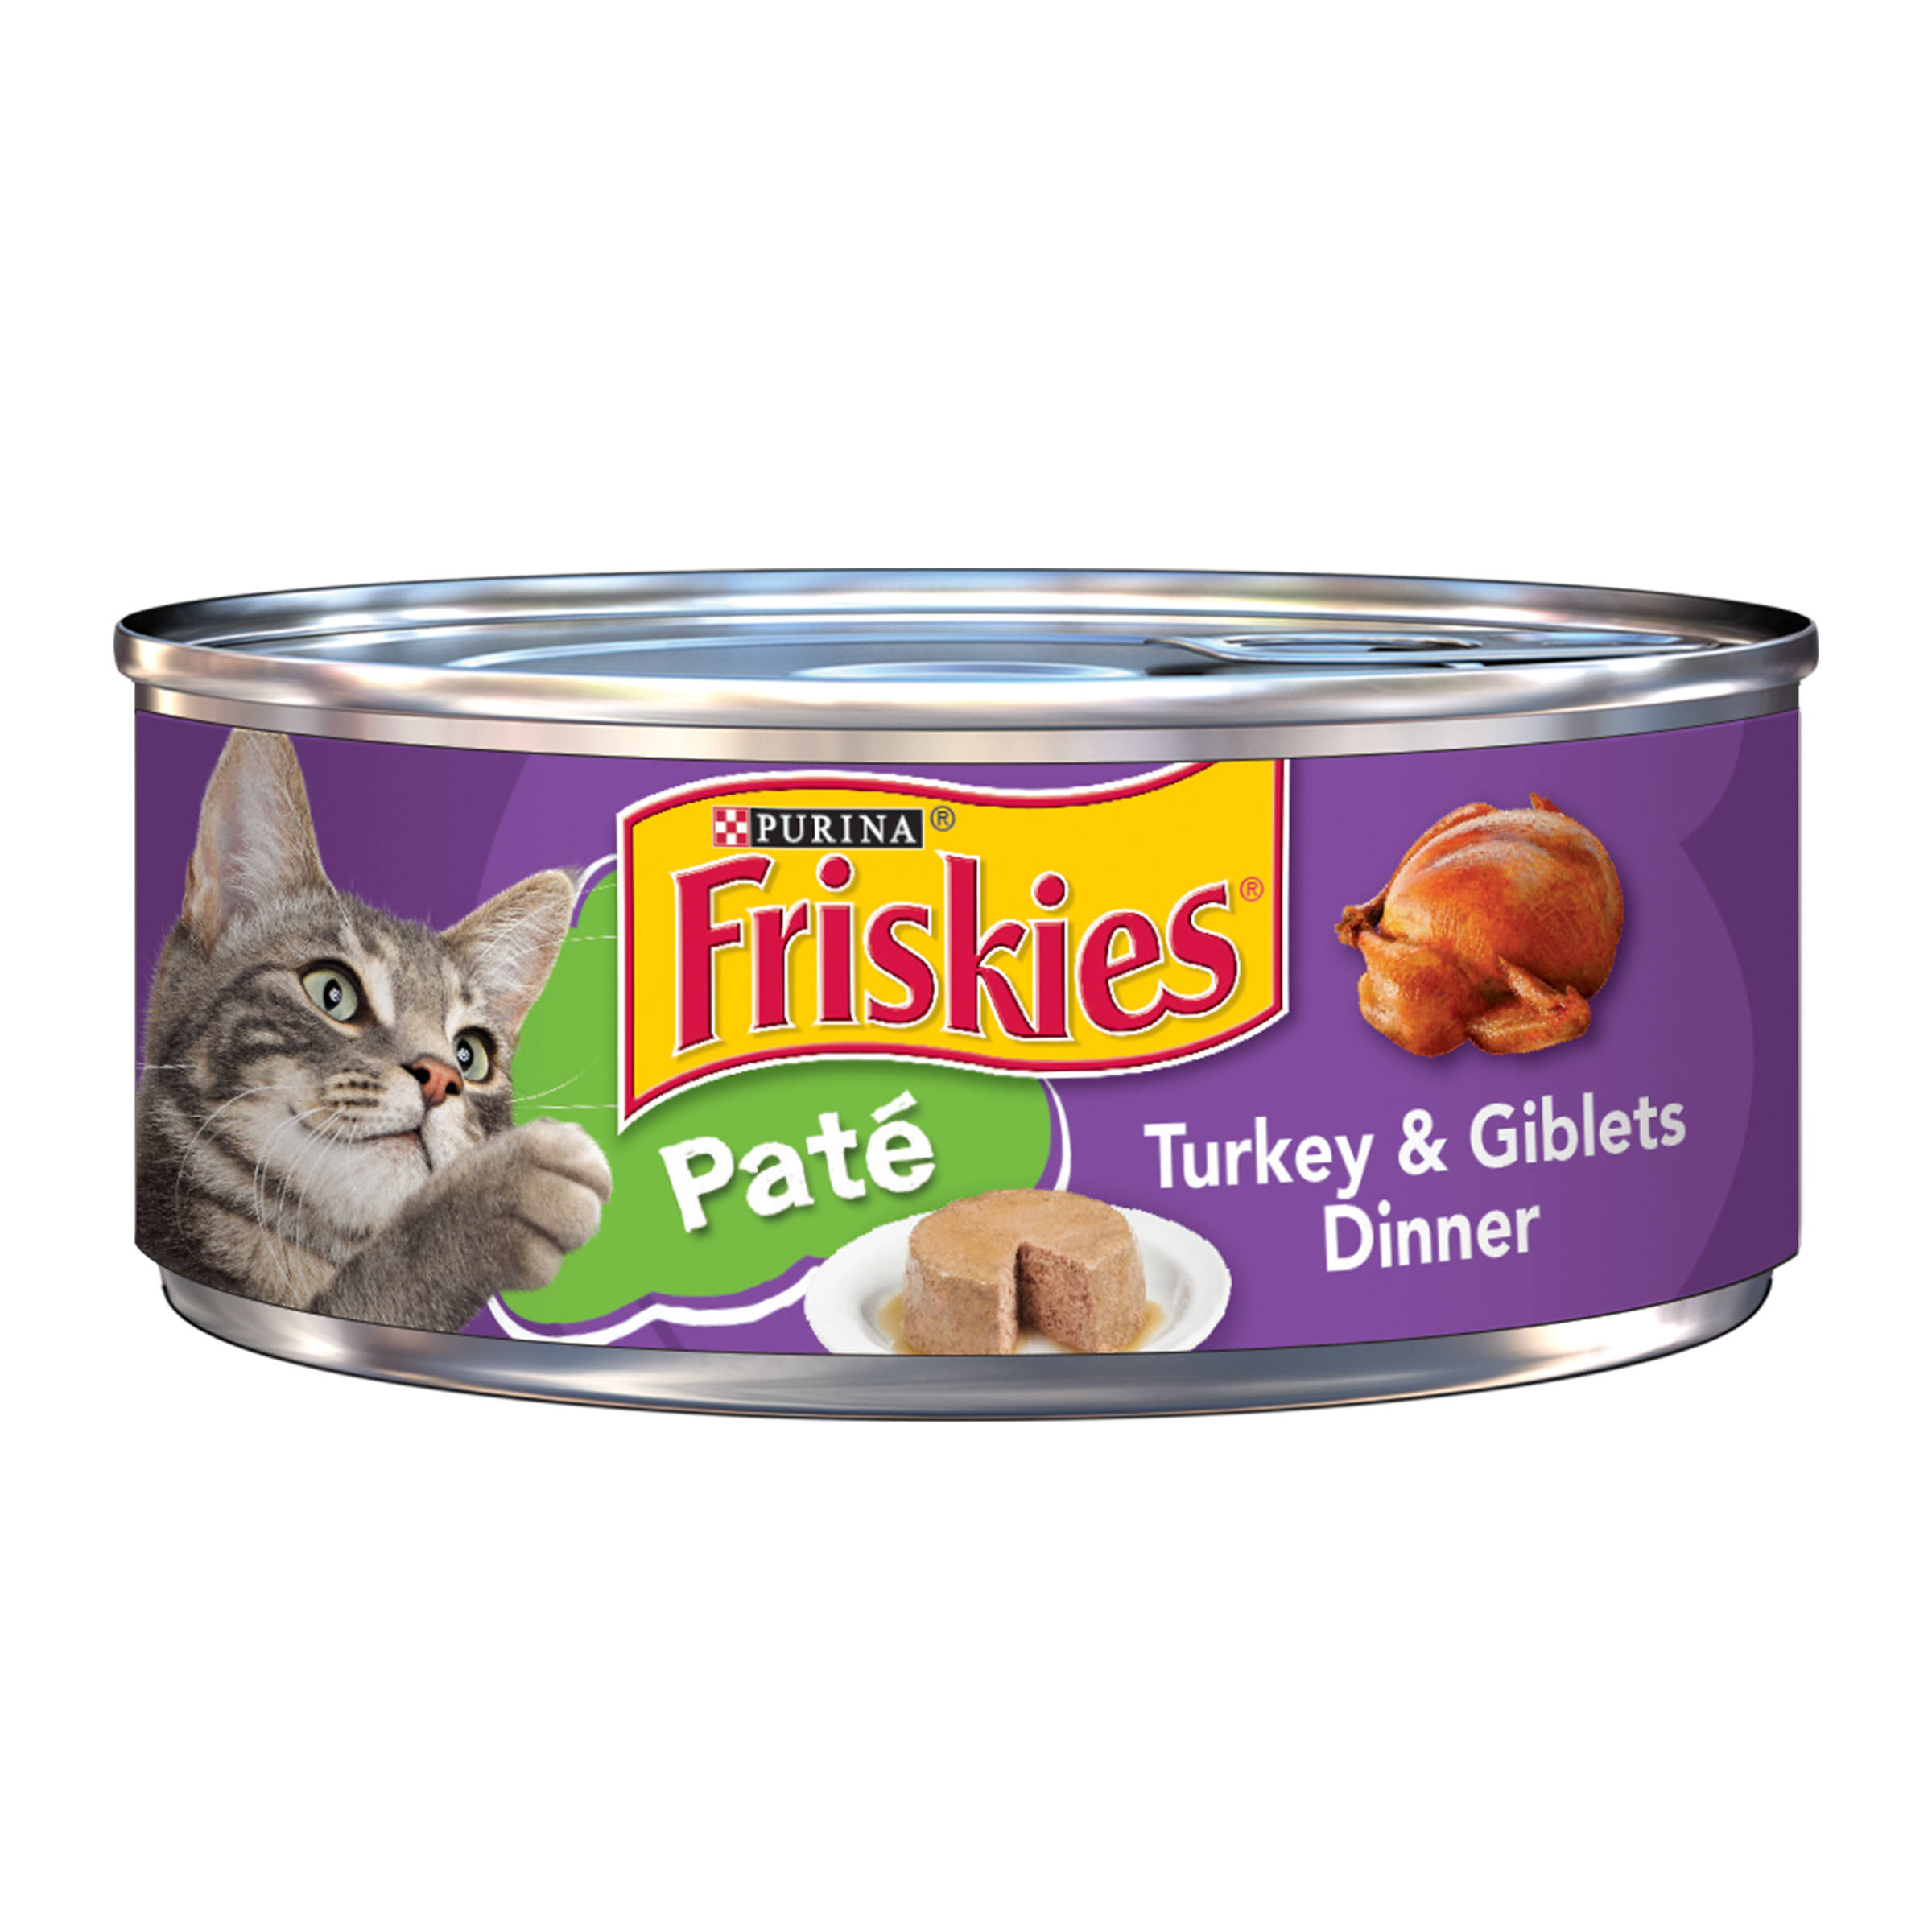 Purina Friskies Pate Turkey and Giblets Dinner Cat Food - 5.5oz